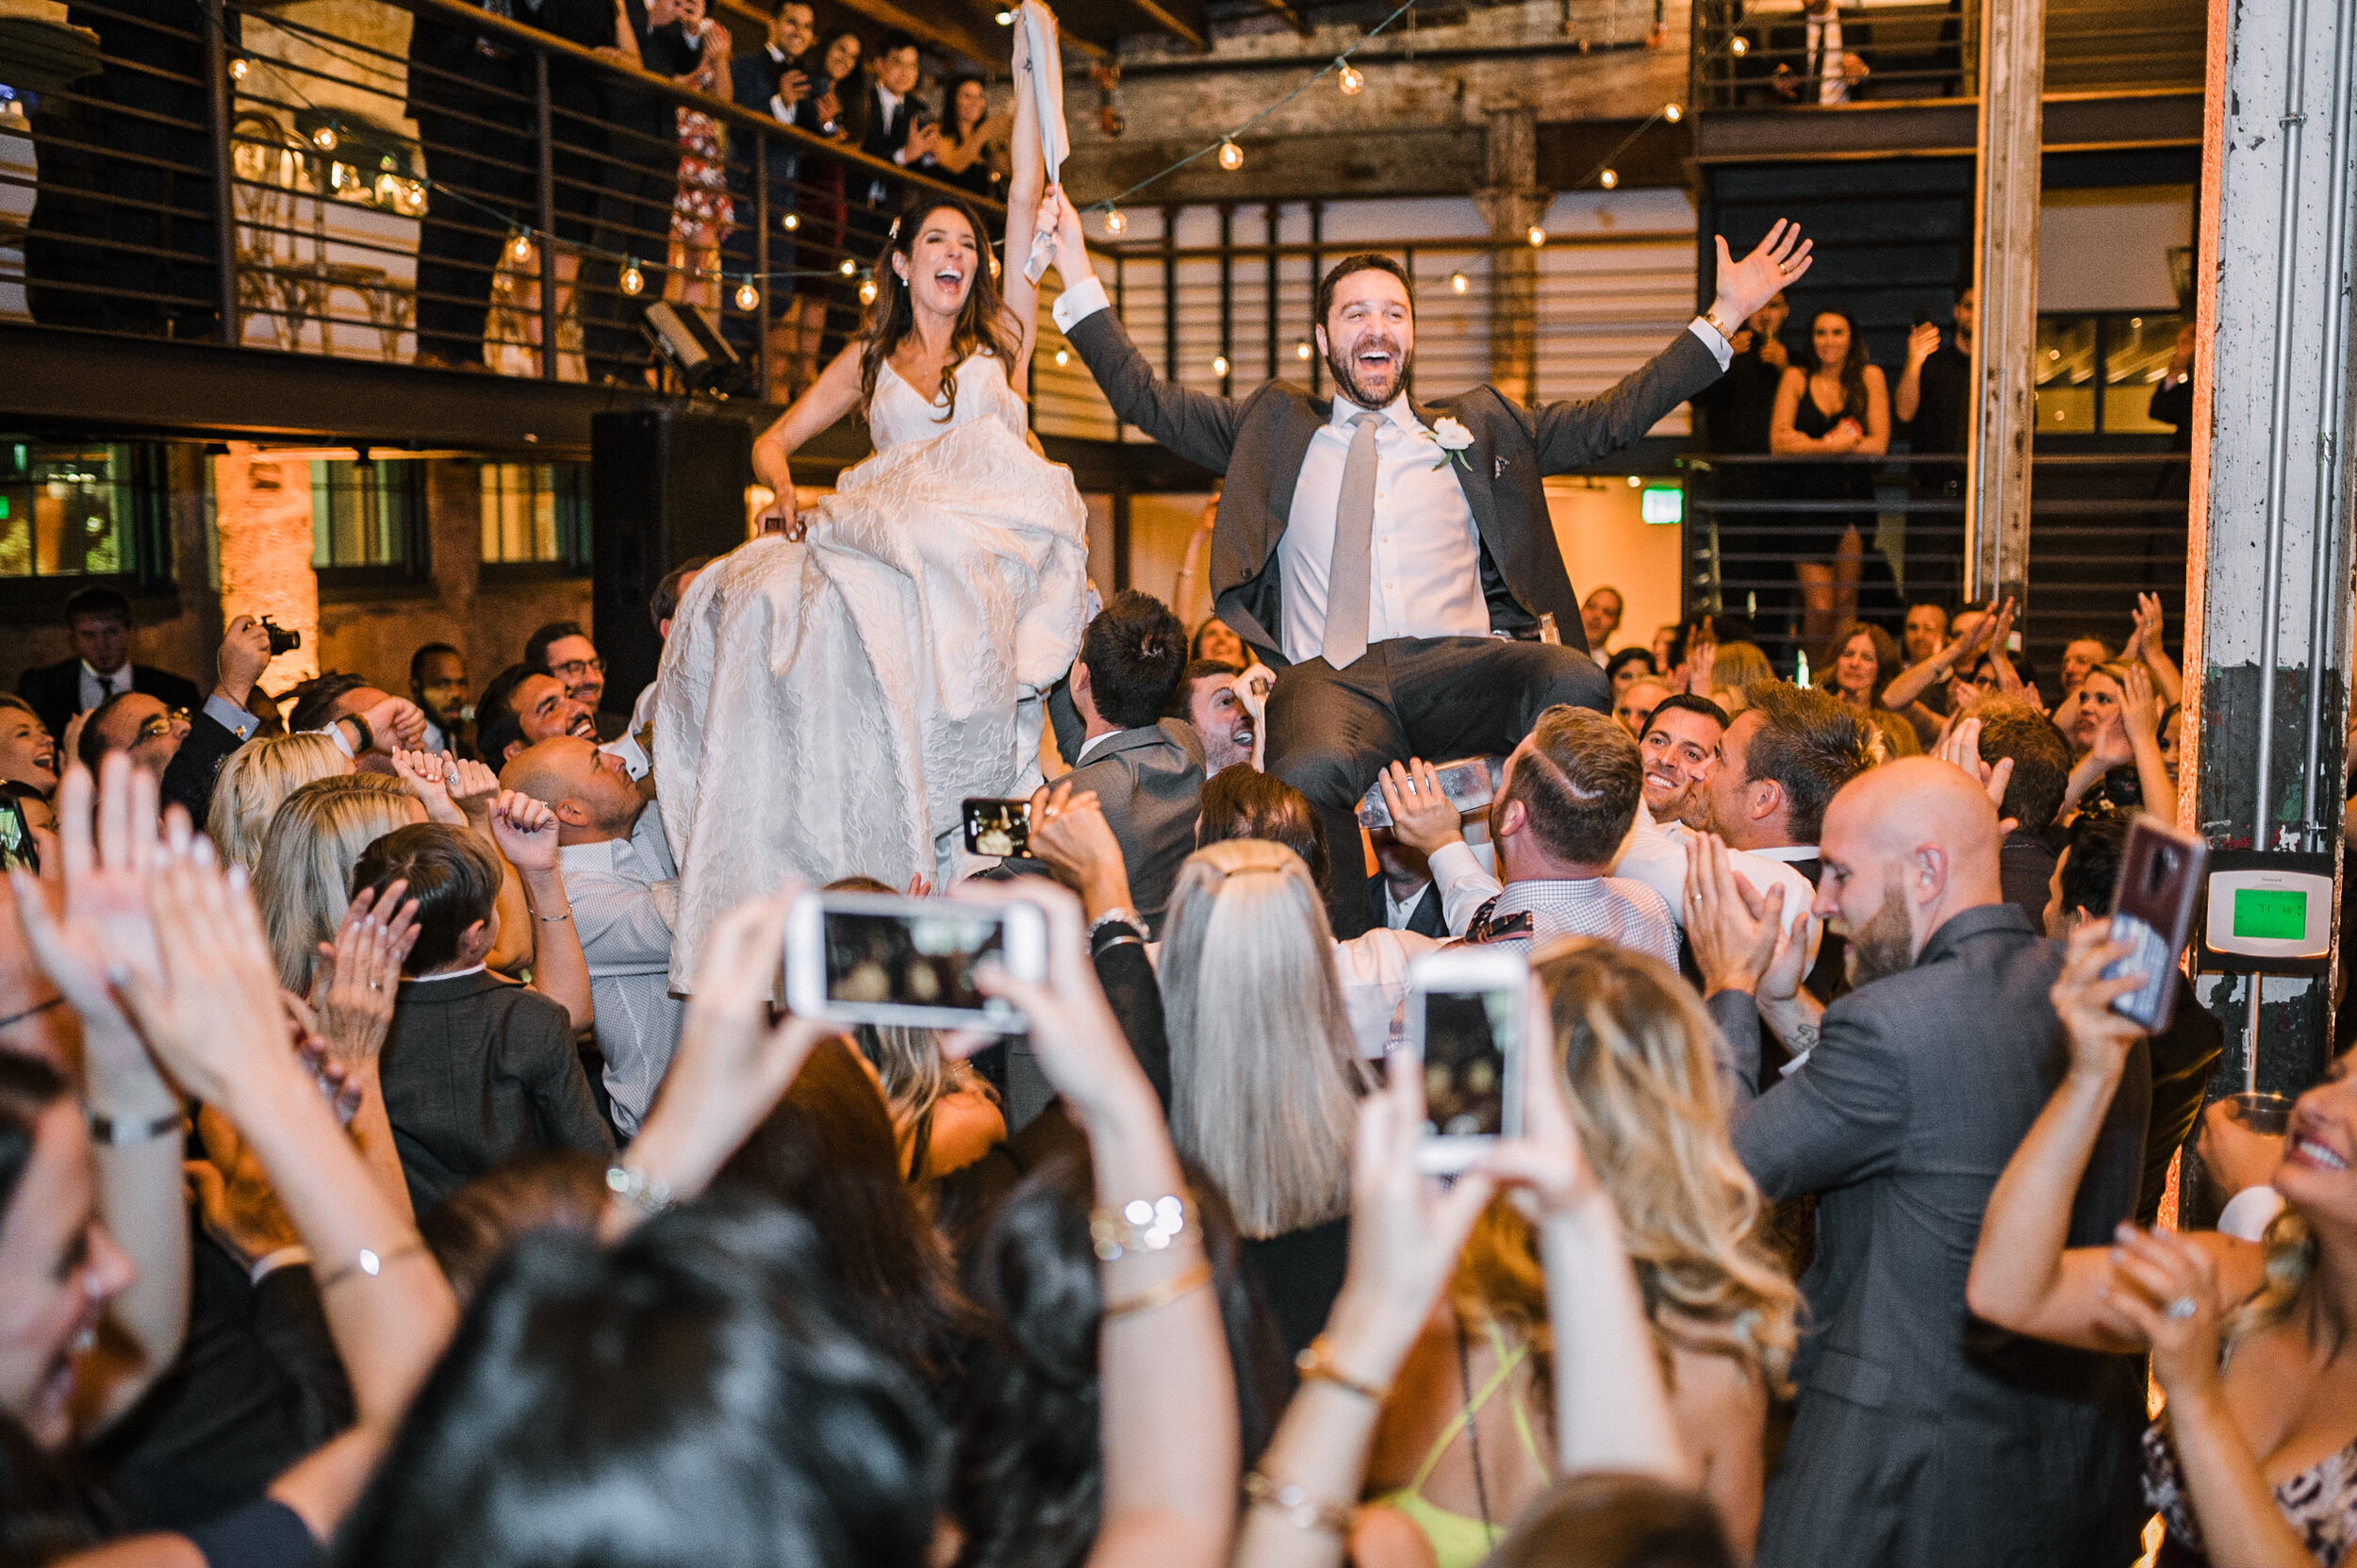 bride and groom being carried by guests during reception at The Winslow